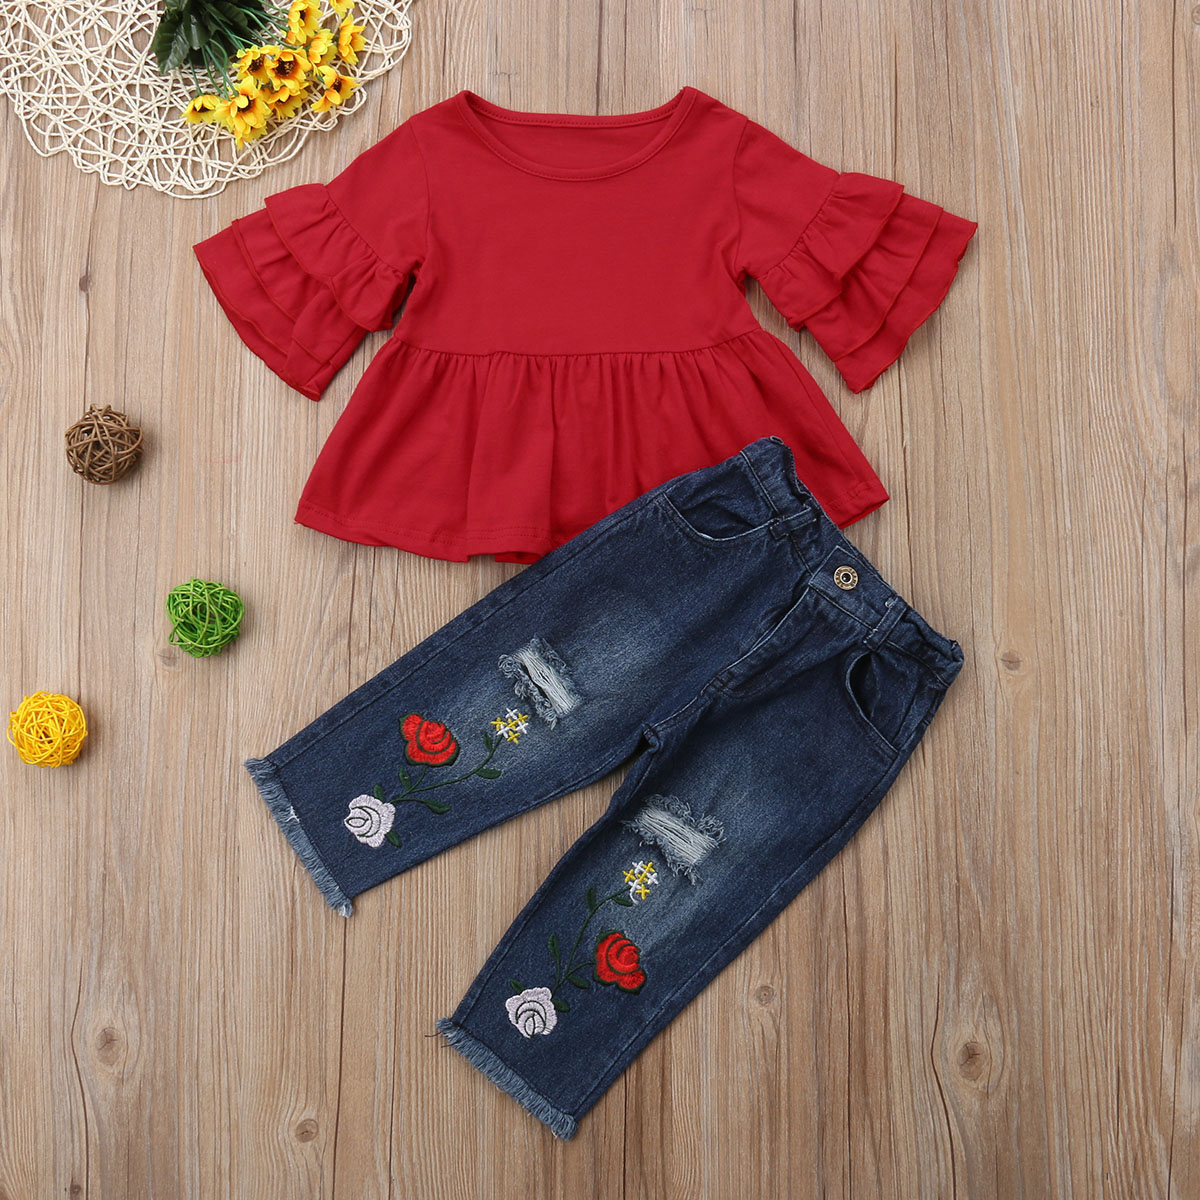 Autumn New Kid Baby Girls 2pcs Clothing Set Red Long Sleeves T shirts Tunic Floral Denim Pants Jeans Outfits 2018 Child Clothes in Clothing Sets from Mother Kids